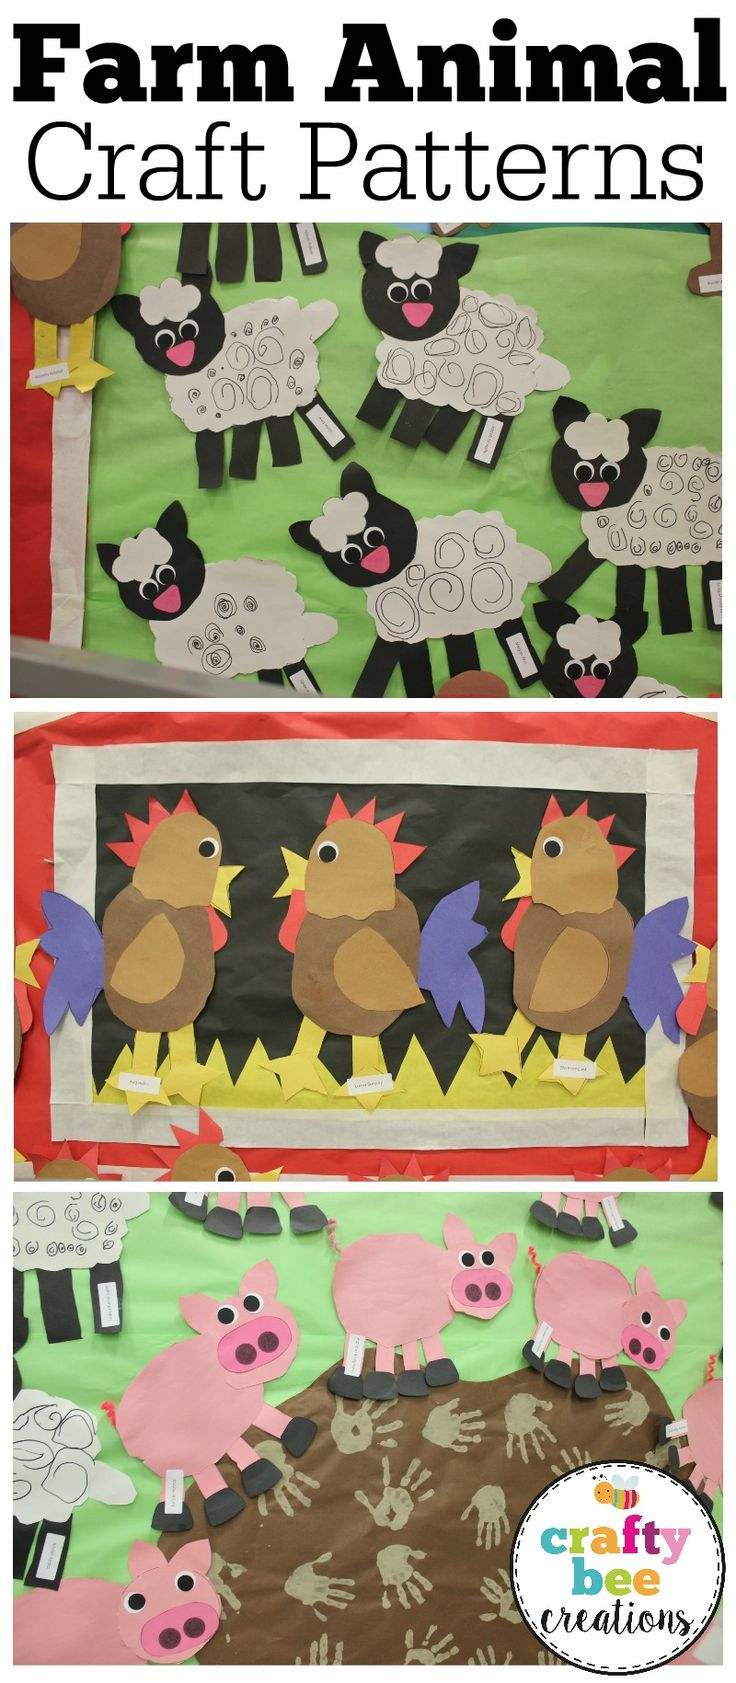 Take a look at this amazing End of the Year Preschool Ceremony that is decorated like a farm! These farm animal patterns are perfect for preschool and kindergartners. They are easy patterns that kids will have so much fun working on! Plus a Rooster Craft Freebie!